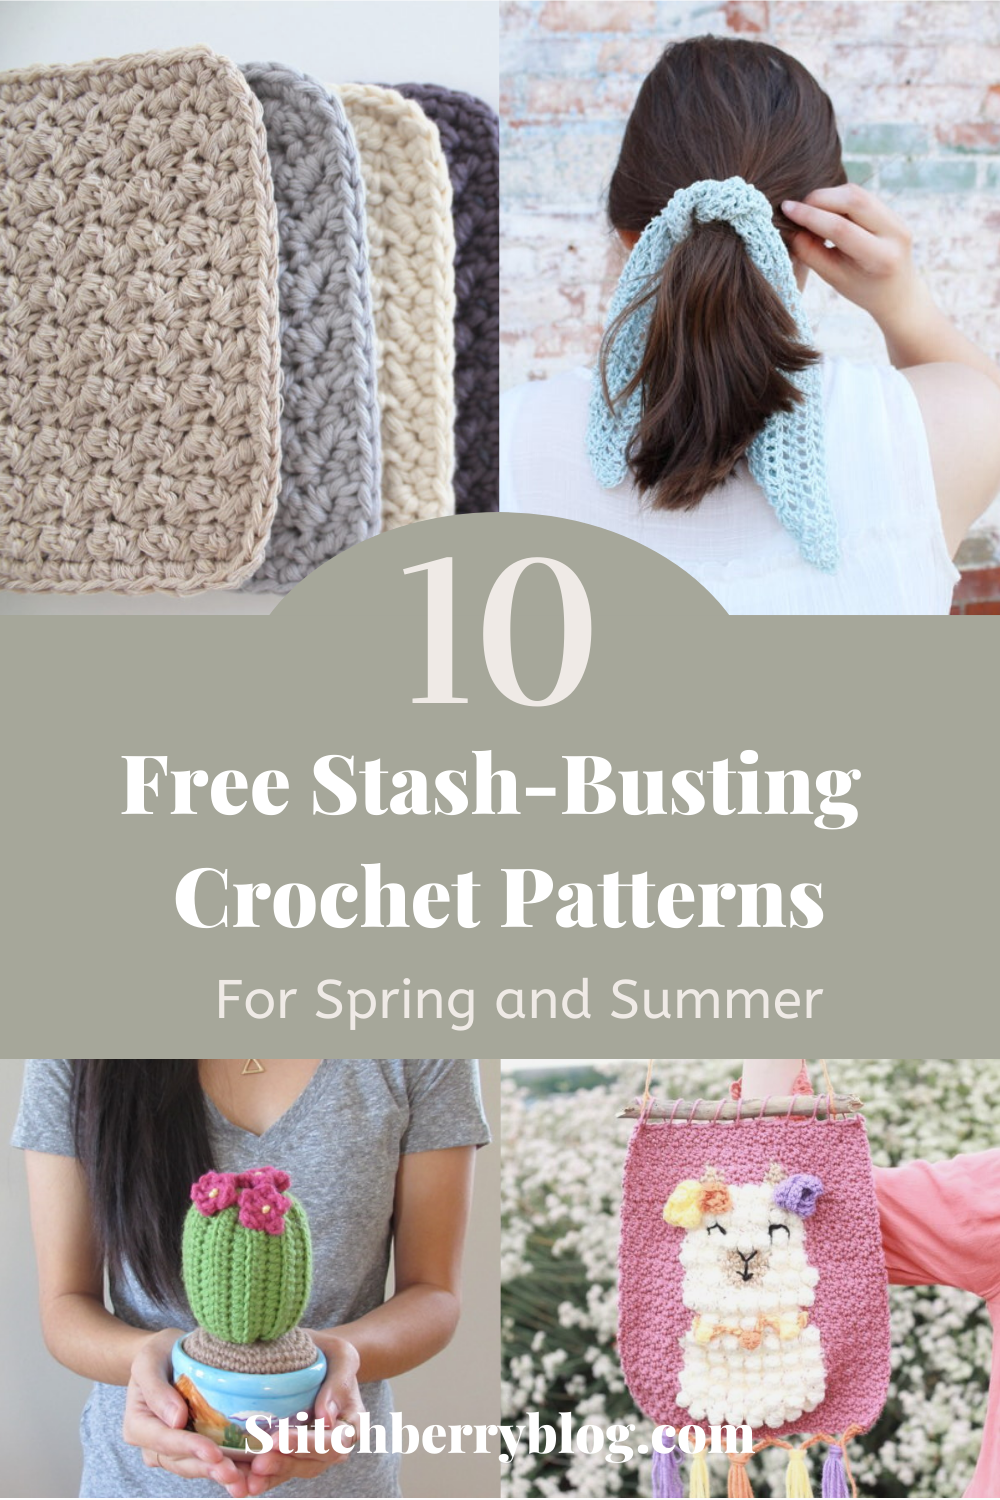 10 Free Stash-busting Crochet Projects for Spring and Summer